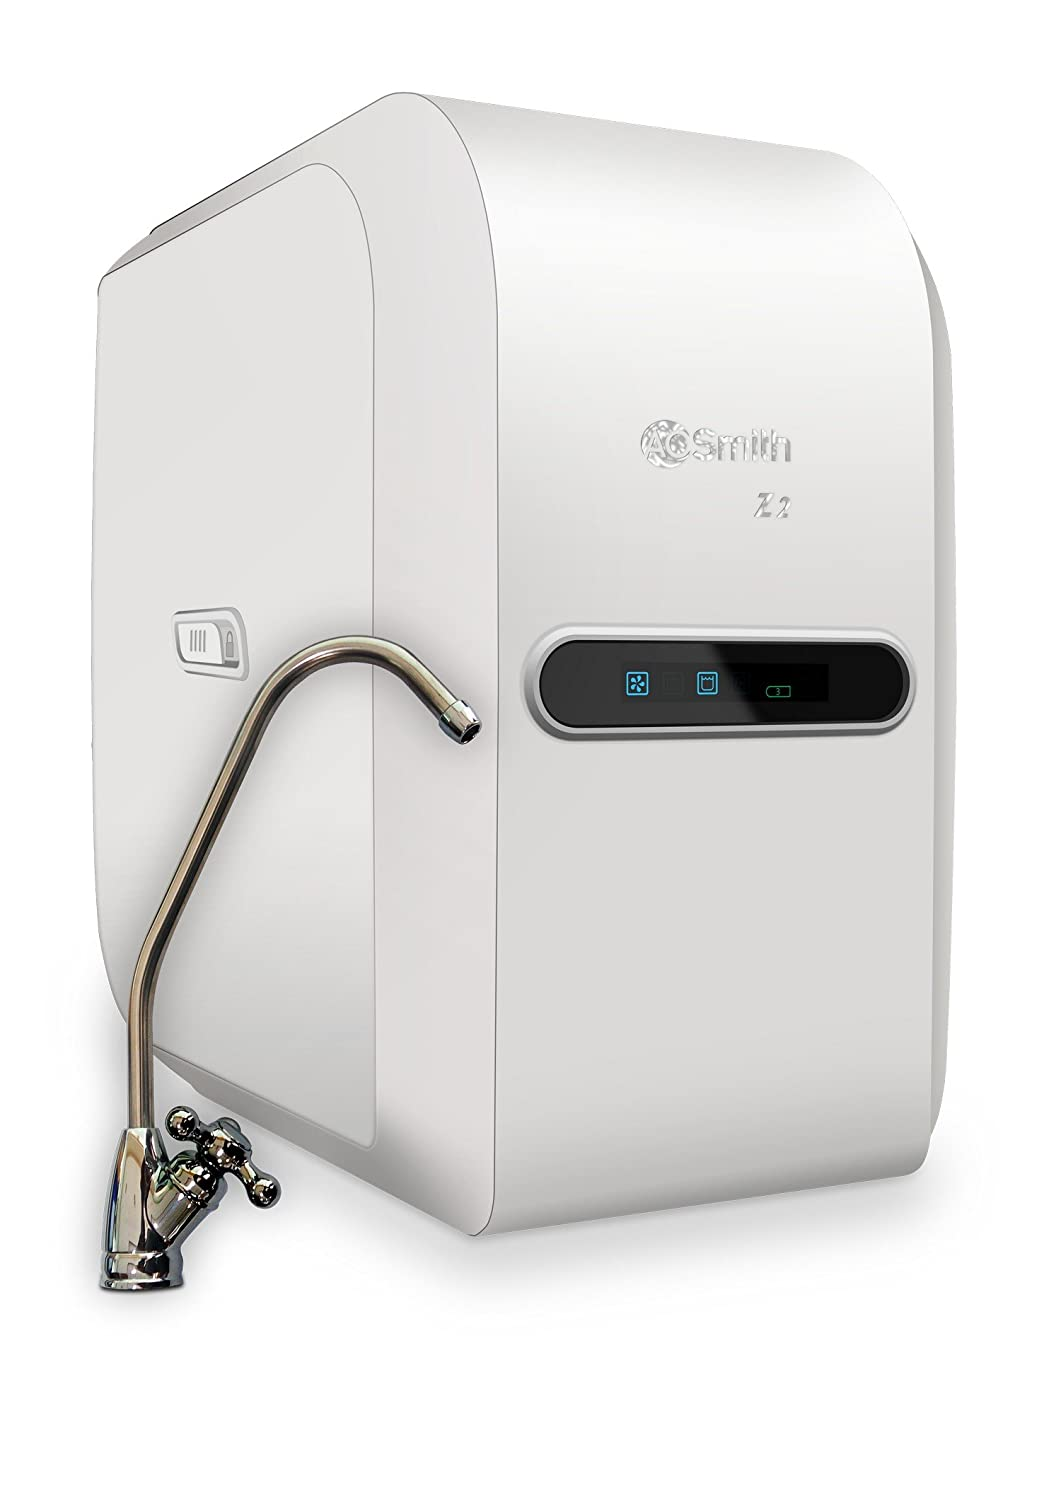 A.O.Smith Z-Series Z2 5-Litre Water Purifier